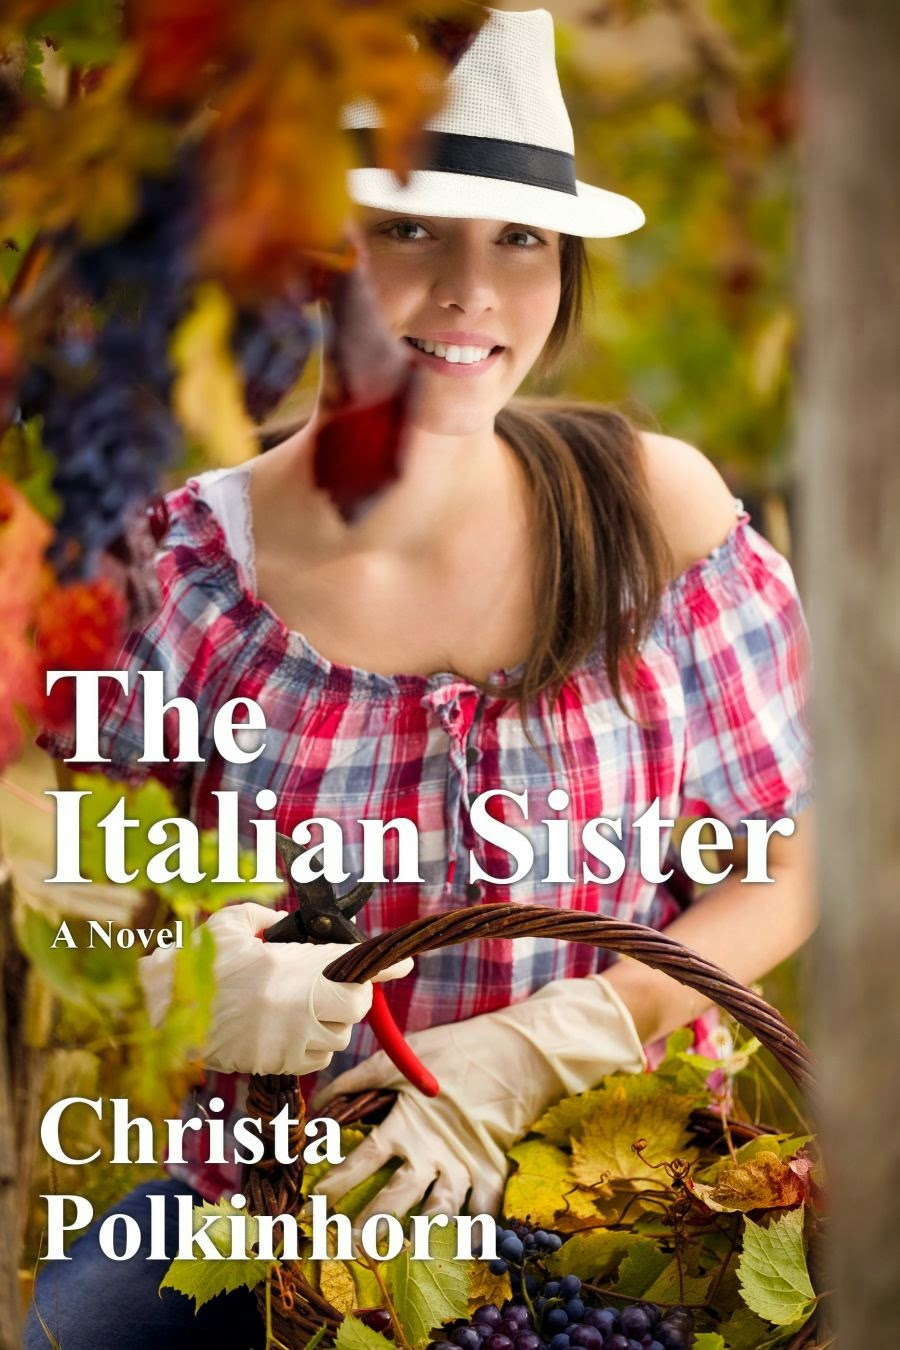 The Italian Sister (The Wine Lover's Daughter, Book 1) CLICK ON THE BOOK COVERS BELOW.